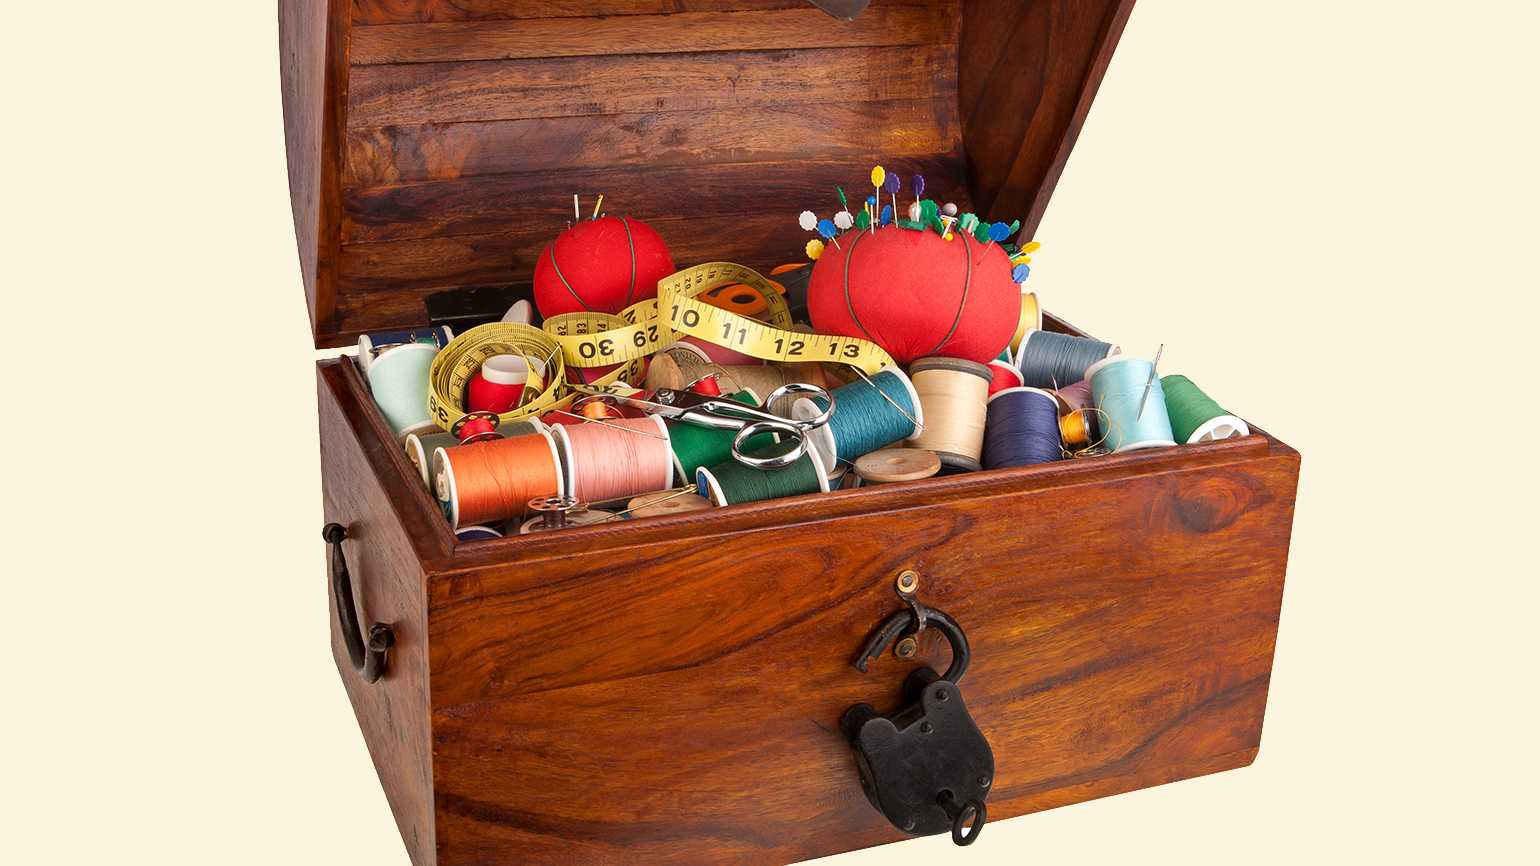 A vintage sewing chest